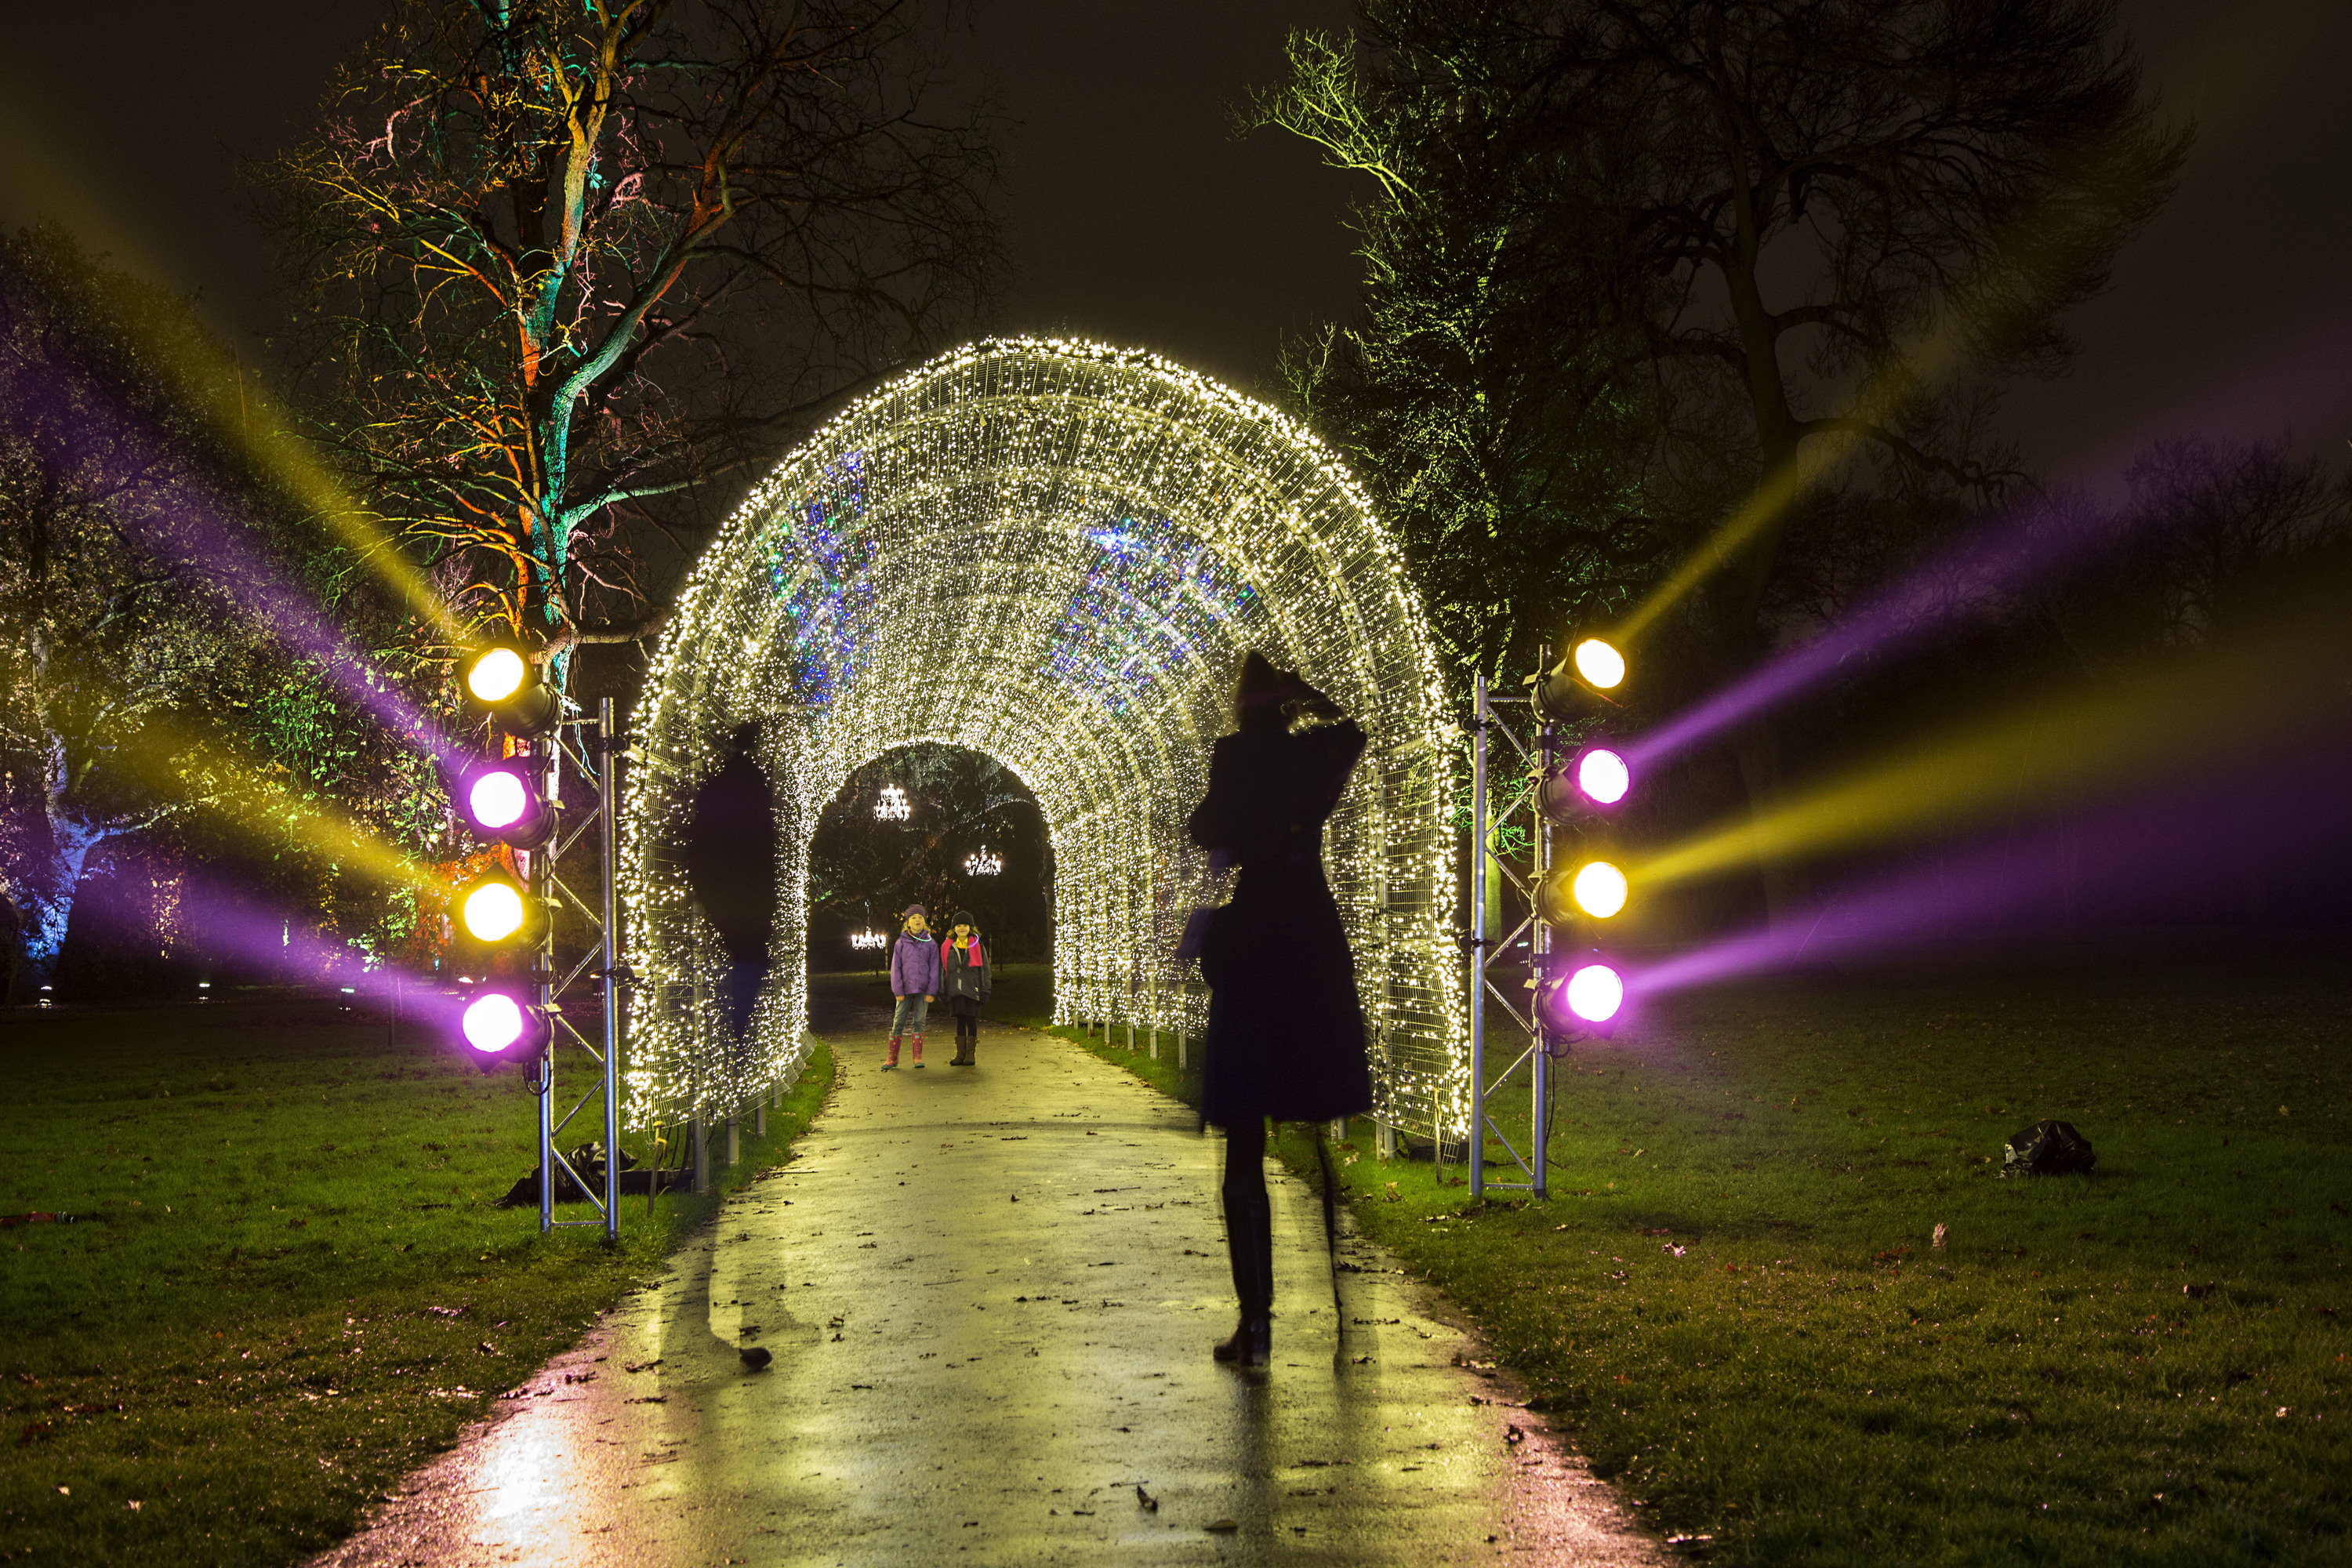 Christmas at Kew Gardens' Santa's Grotto